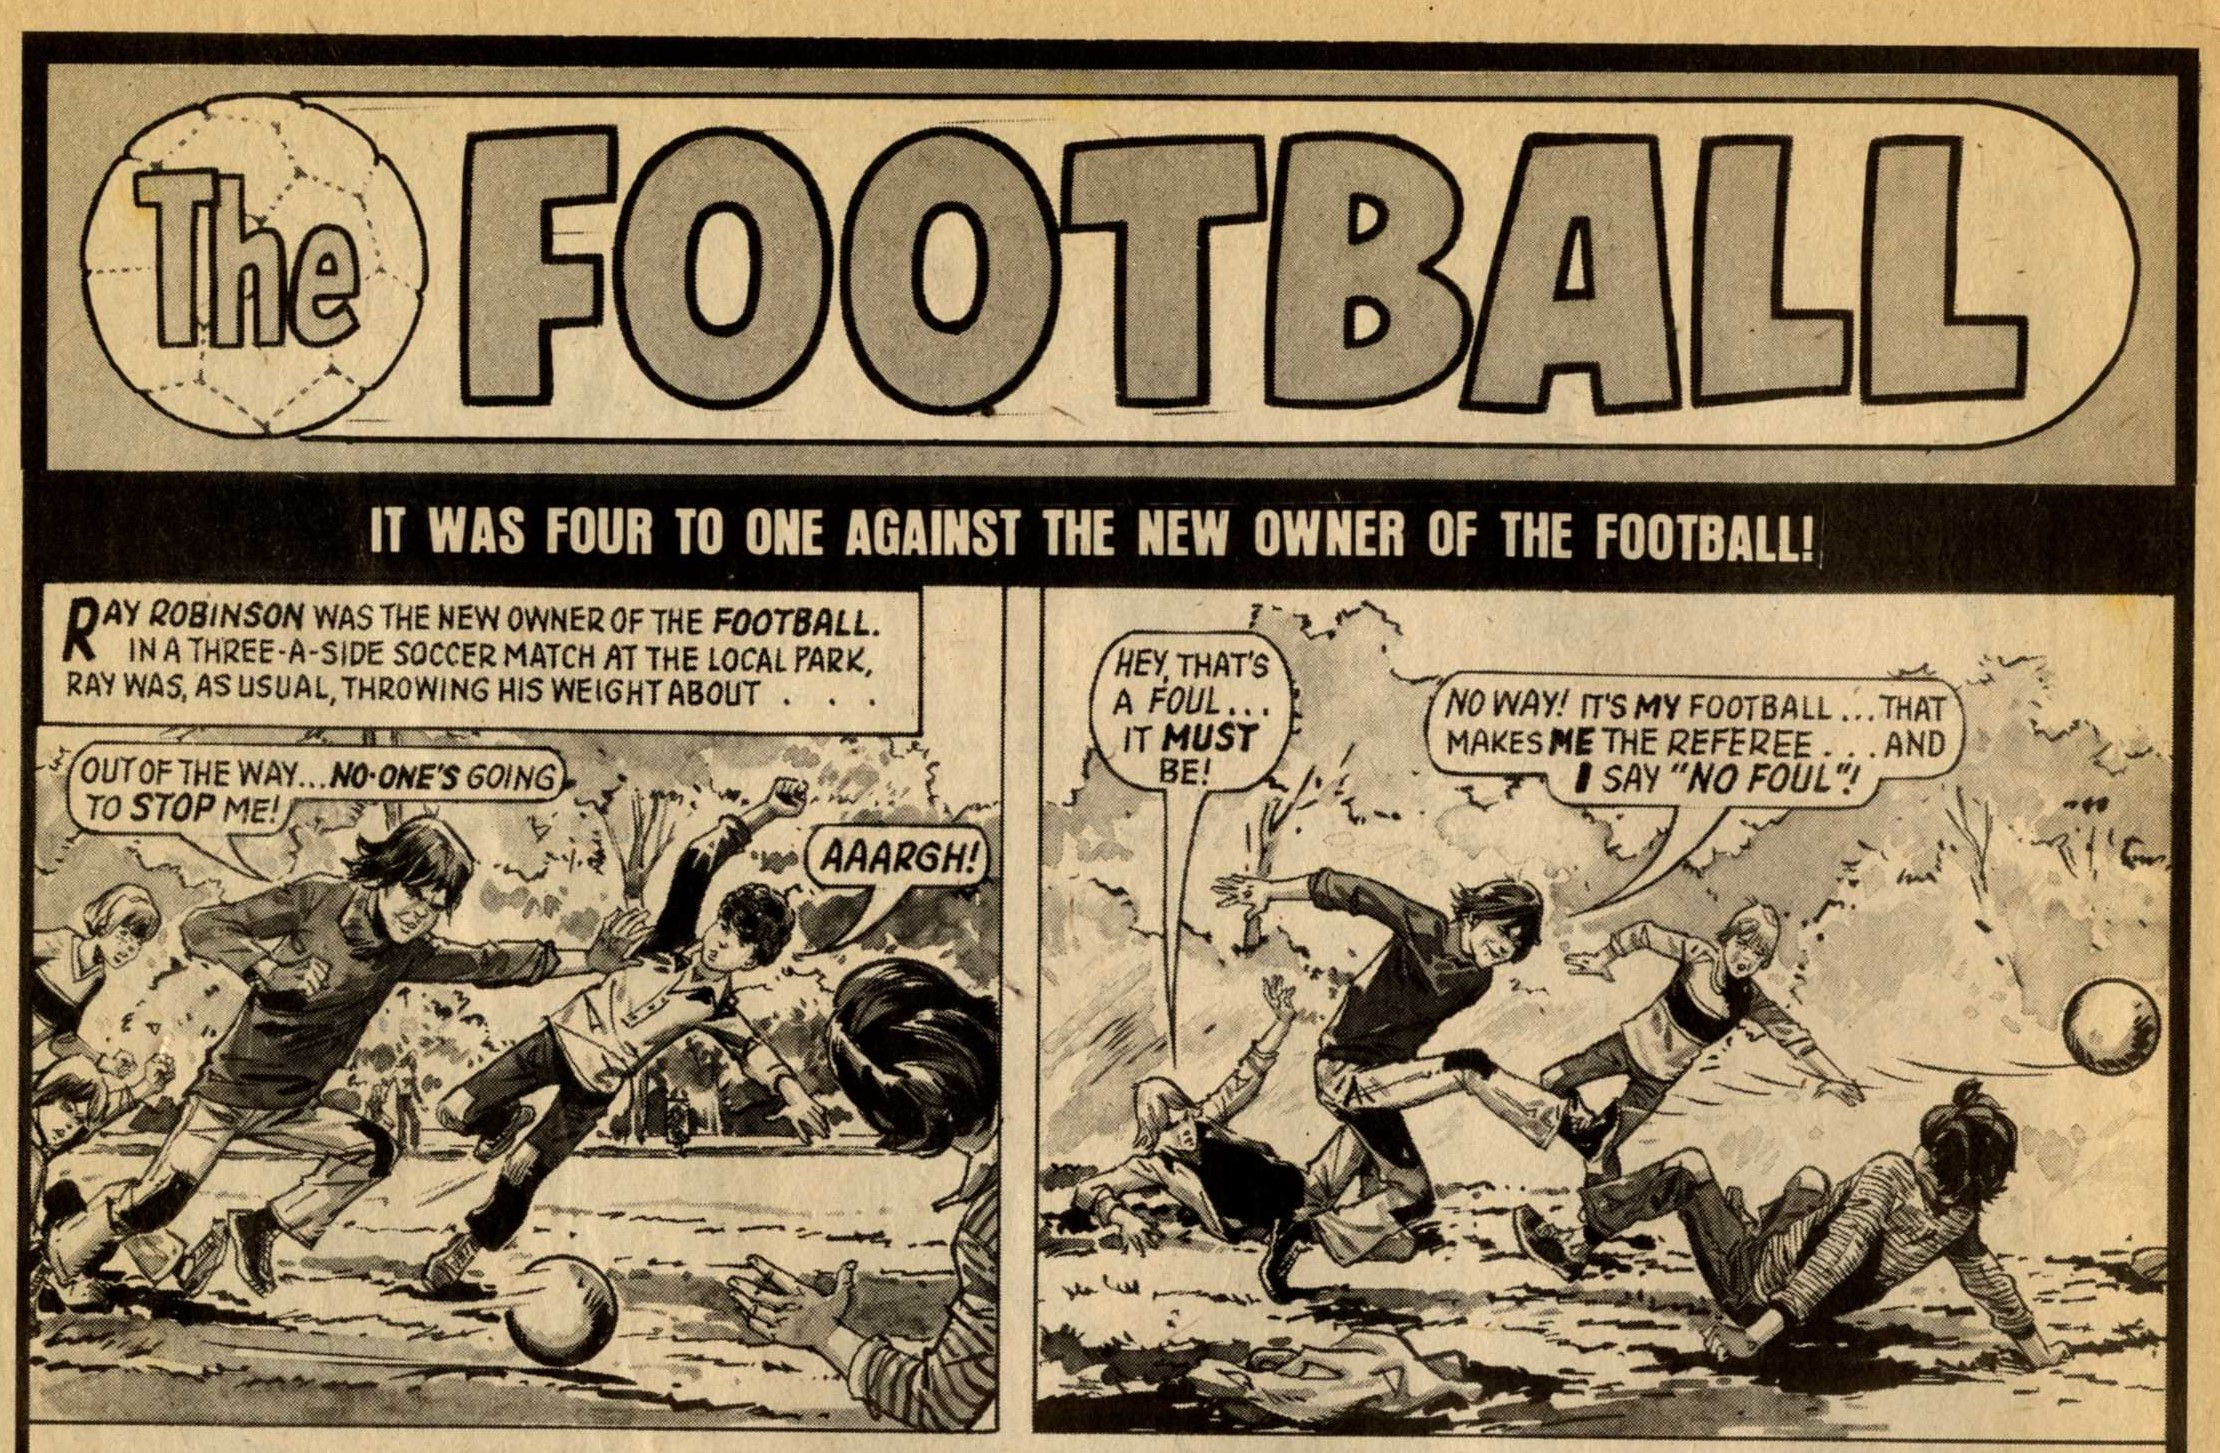 The Football: Barrie Tomlinson (writer), artist unknown